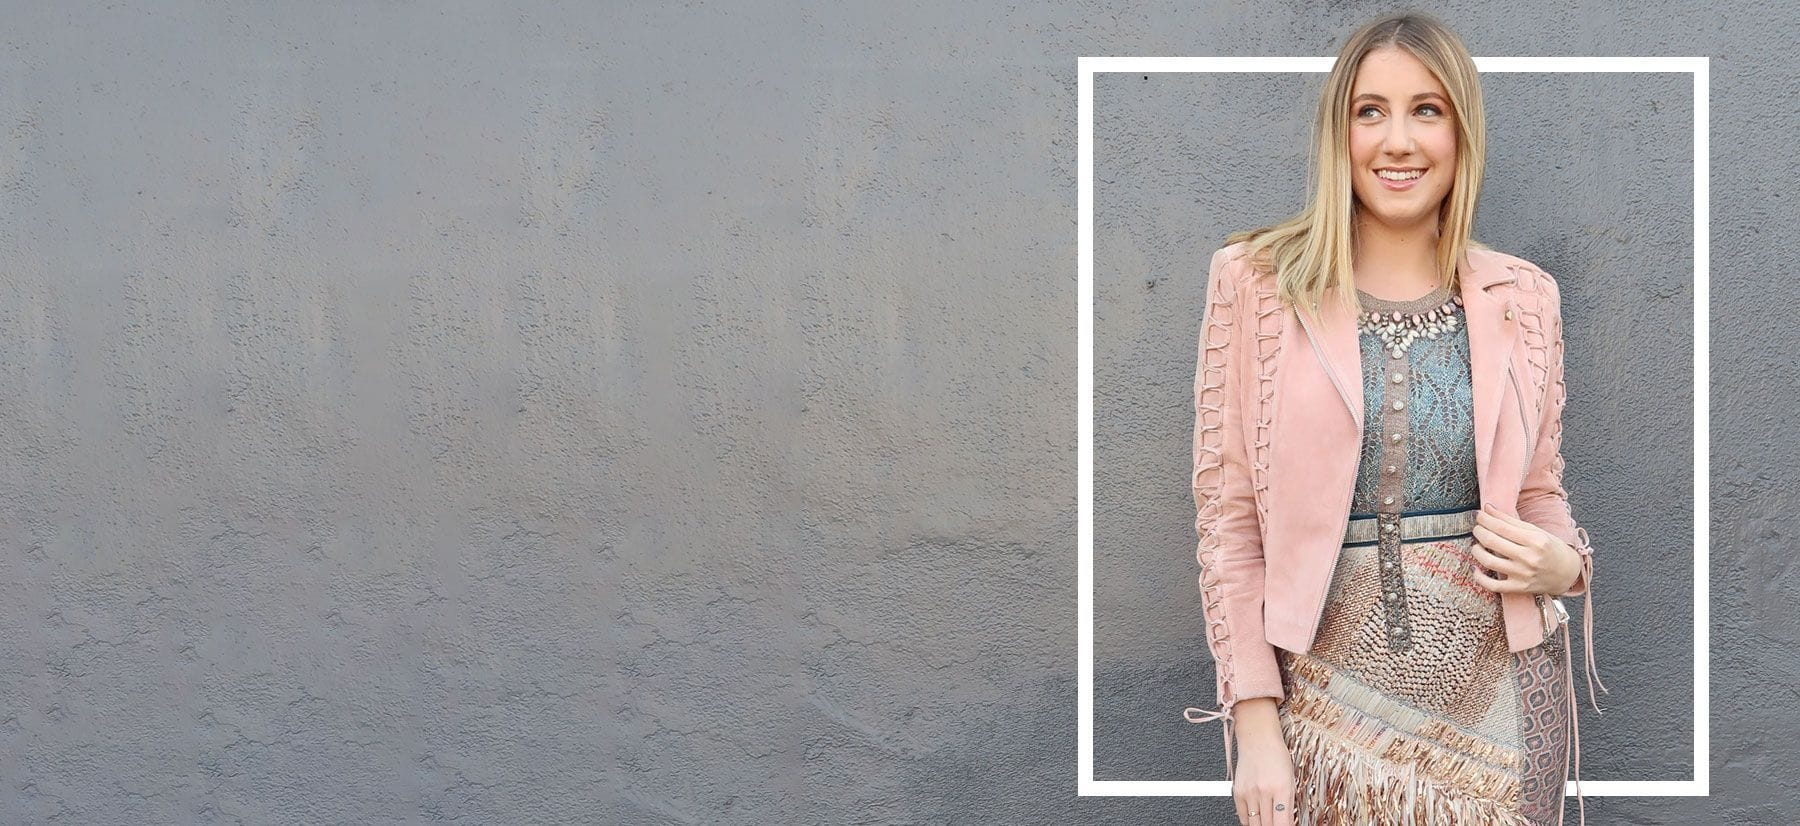 A Life In The Fashion Lane by emerging fashion blogger Alexa Curtis